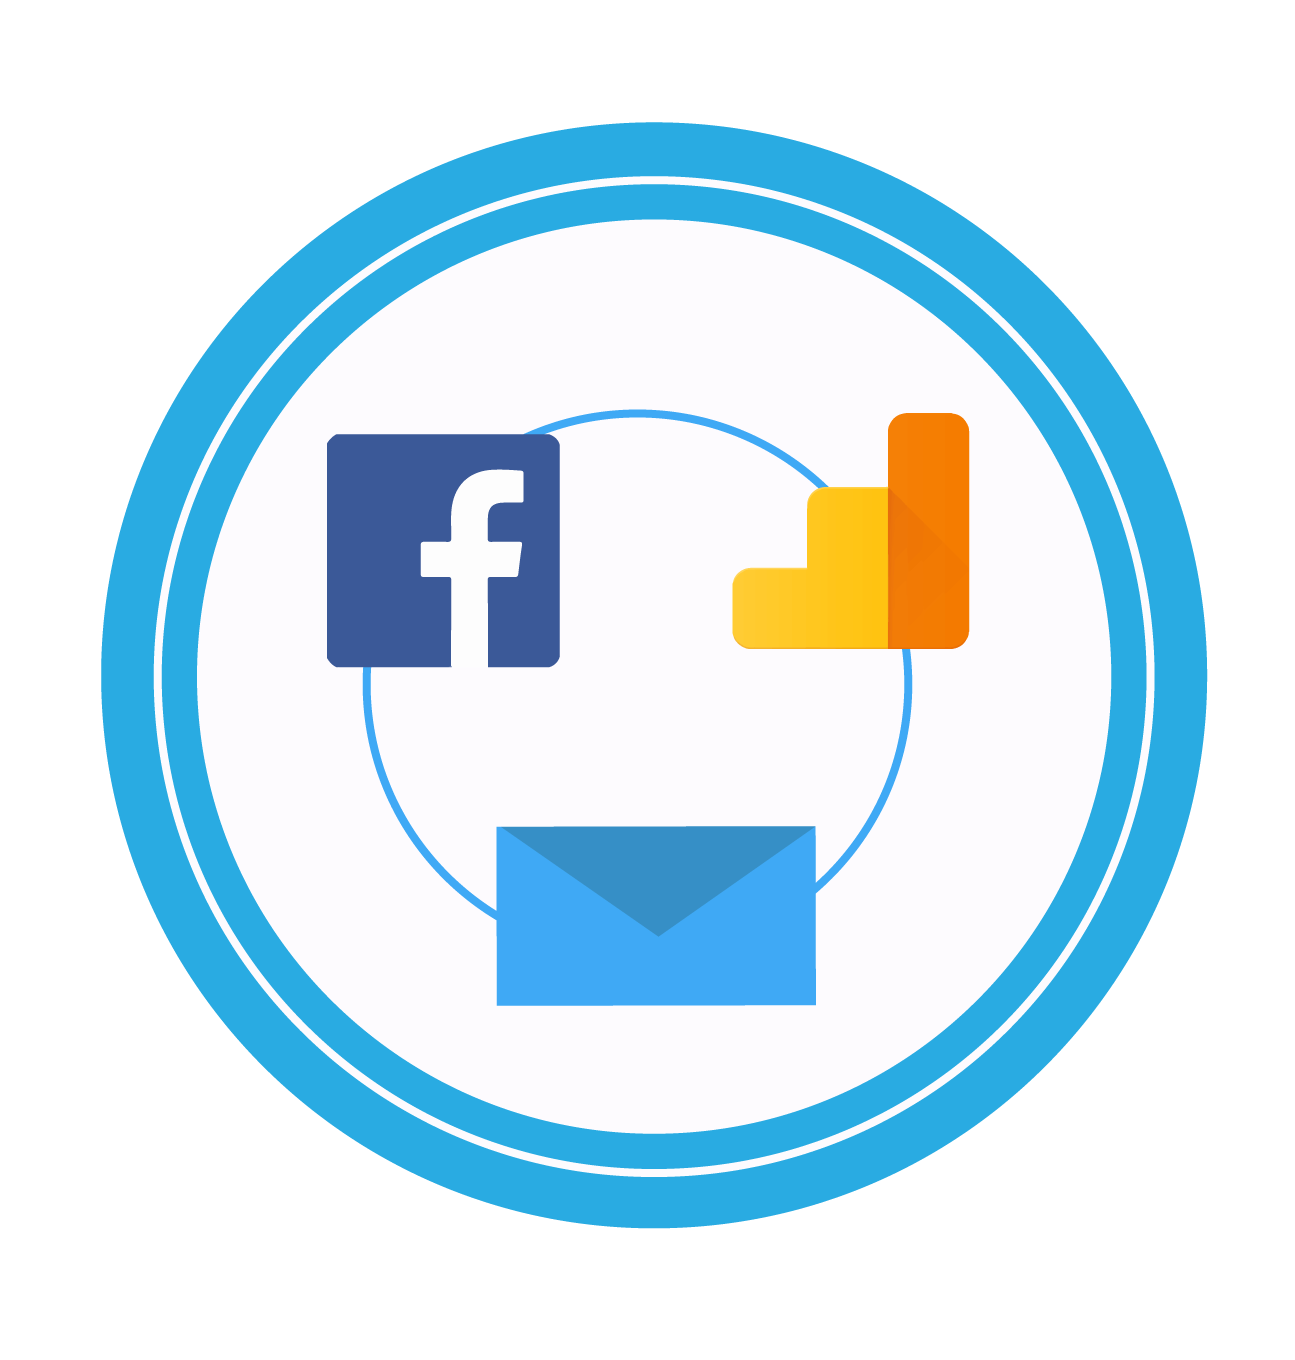 Integração da campanha de e-mail marketing com o Facebook e Google Analytics